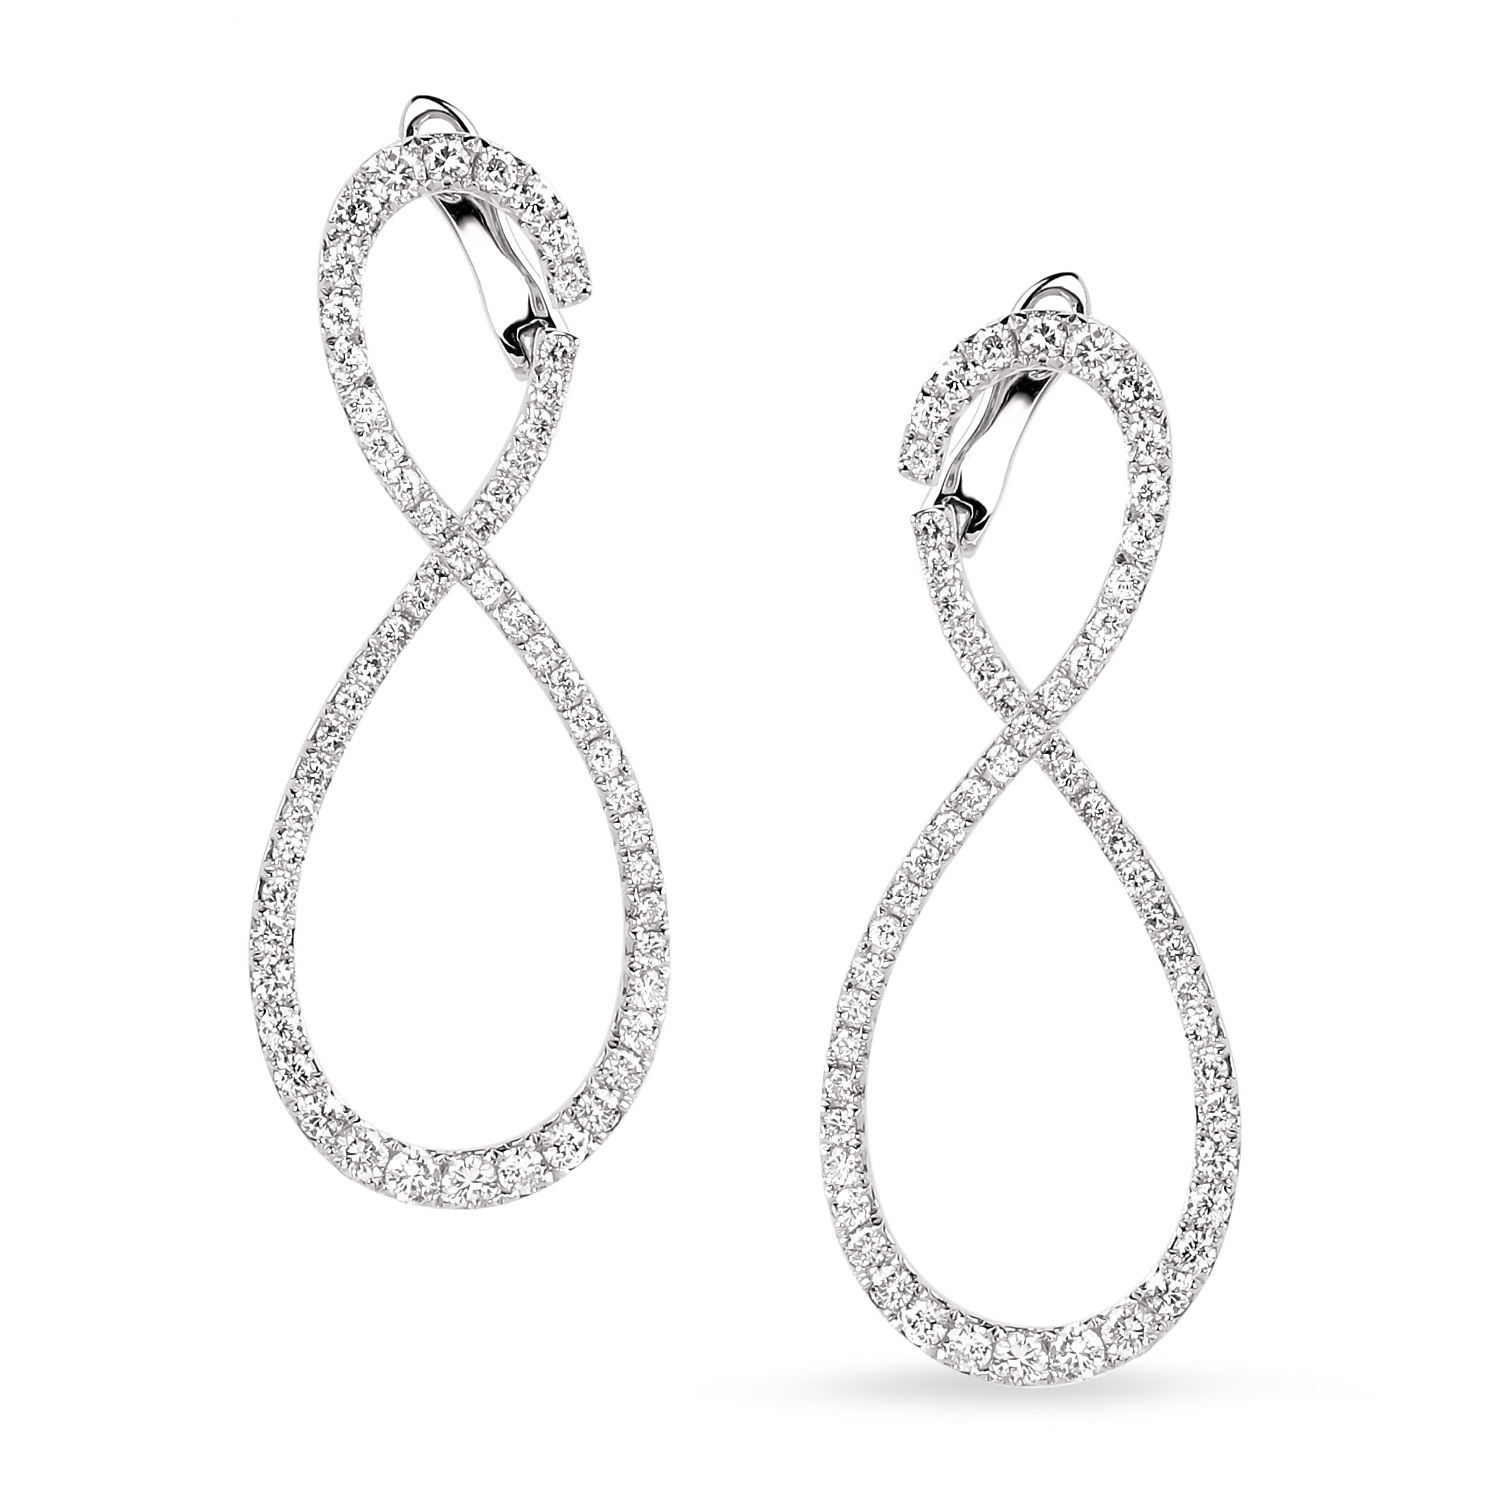 Diamond Hoop Earrings SGE244 (Earrings)